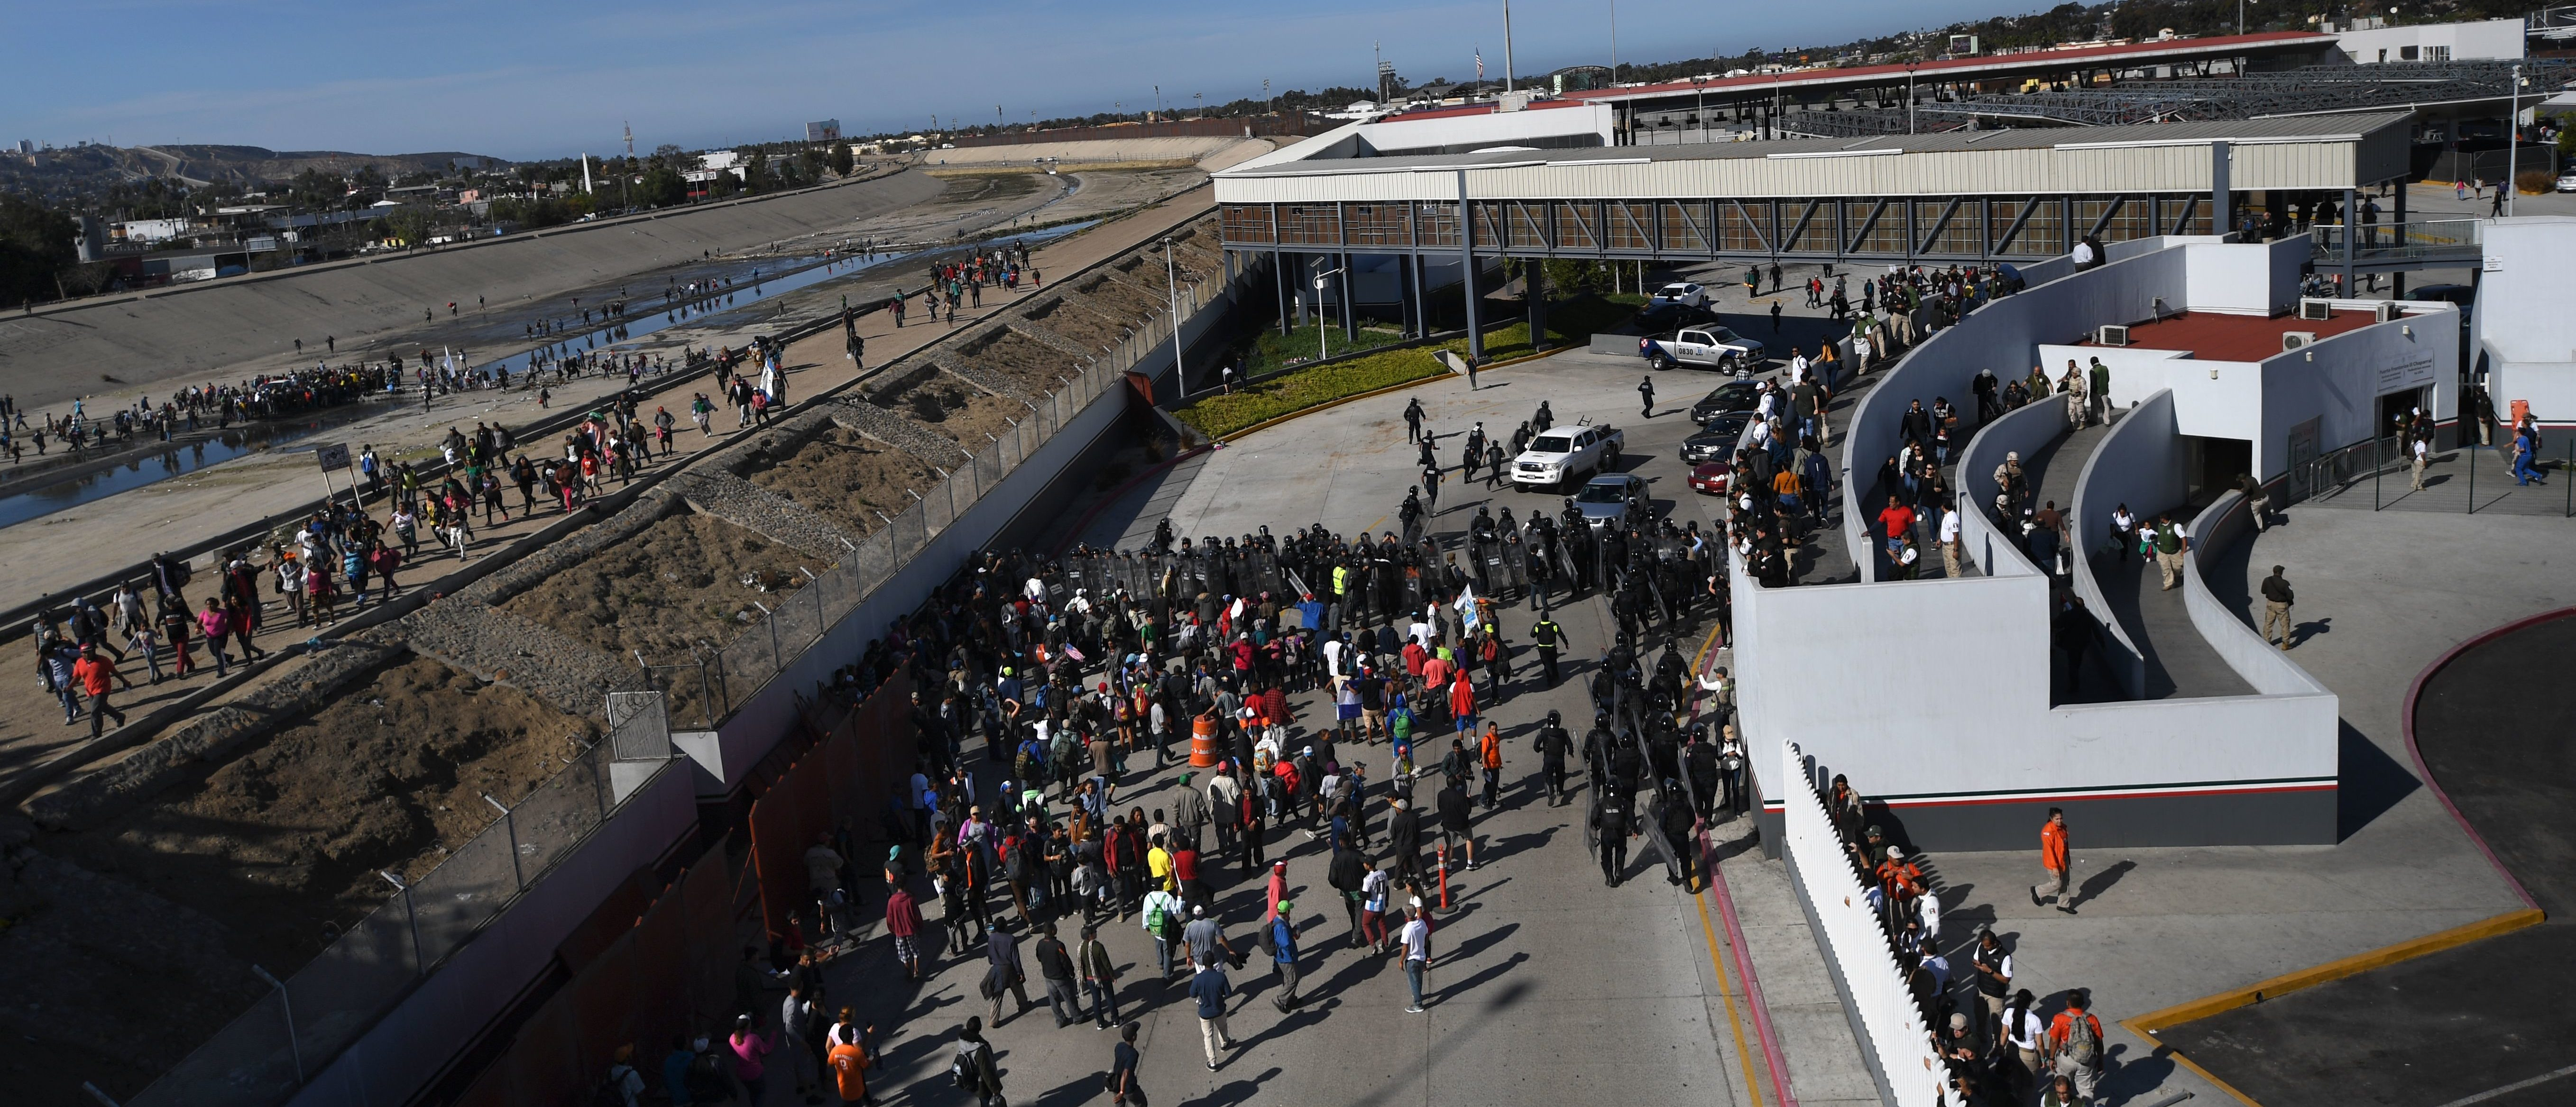 A group of Central American migrants -mostly from Honduras- get to El Chaparral port of entry after crossing the almost dry riverbed of the Tijuana River, in Tijuana, Baja California State, Mexico, on November 25, 2018. - Hundreds of migrants attempted to storm a border fence separating Mexico from the US on Sunday amid mounting fears they will be kept in Mexico while their applications for a asylum are processed. An AFP photographer said the migrants broke away from a peaceful march at a border bridge and tried to climb over a metal border barrier in the attempt to enter the United States. (Photo by Pedro PARDO / AFP)